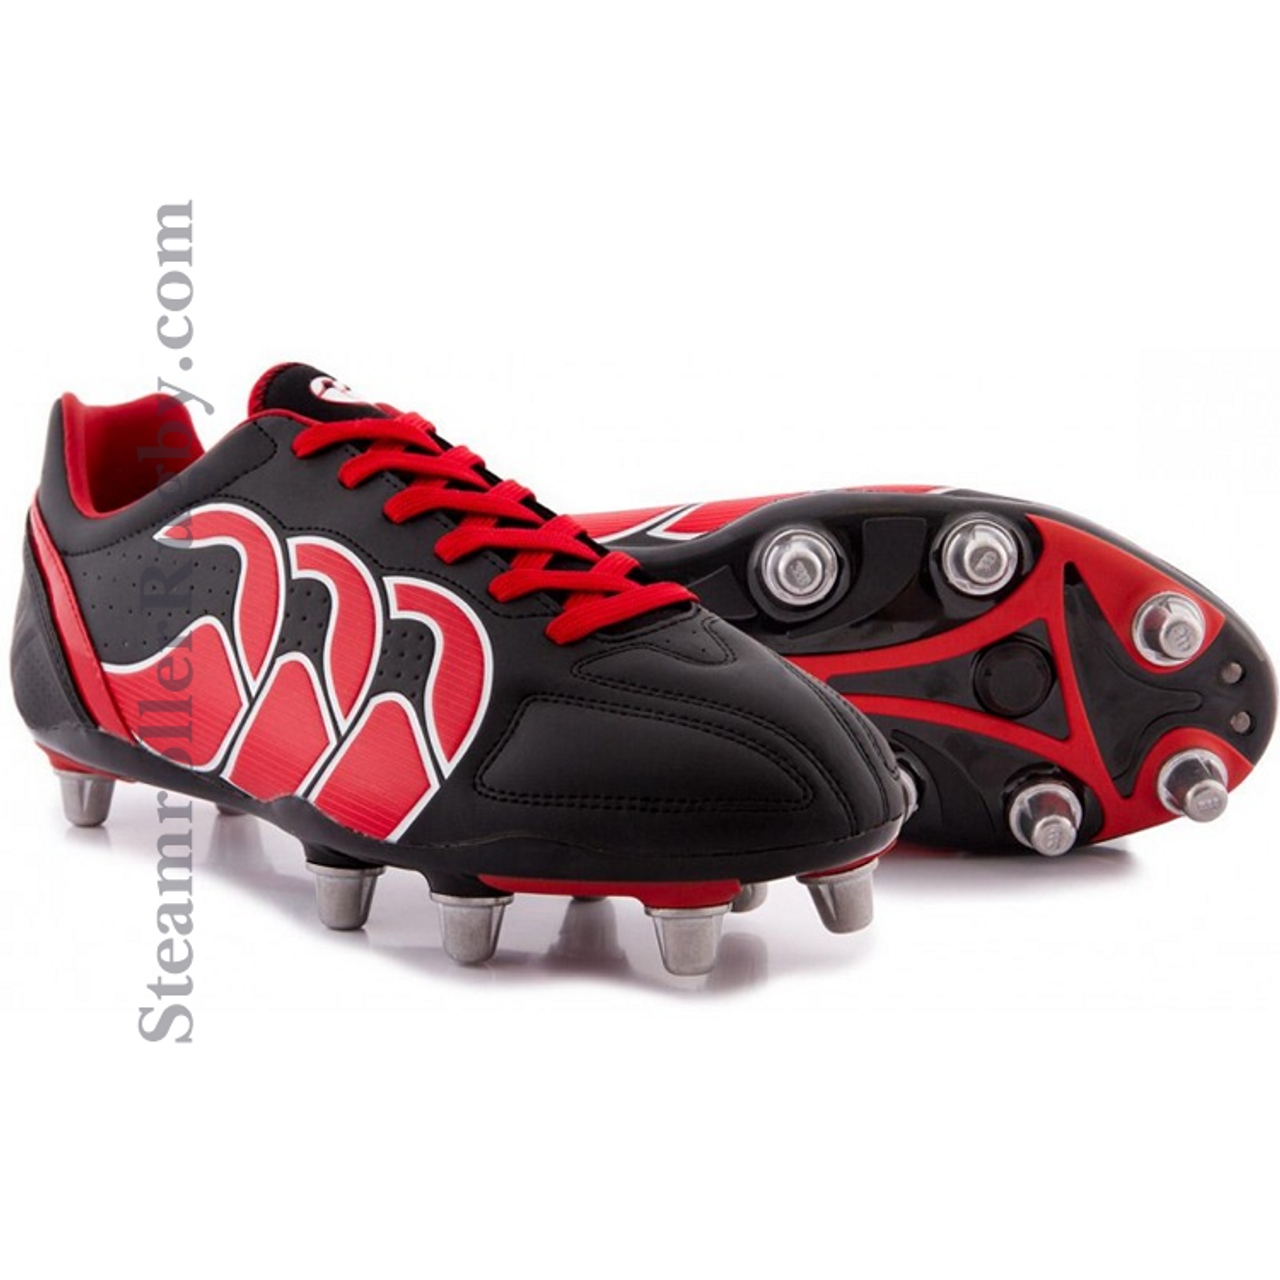 CCC Stampede Club 8-Stud Rugby Boots (e22323)